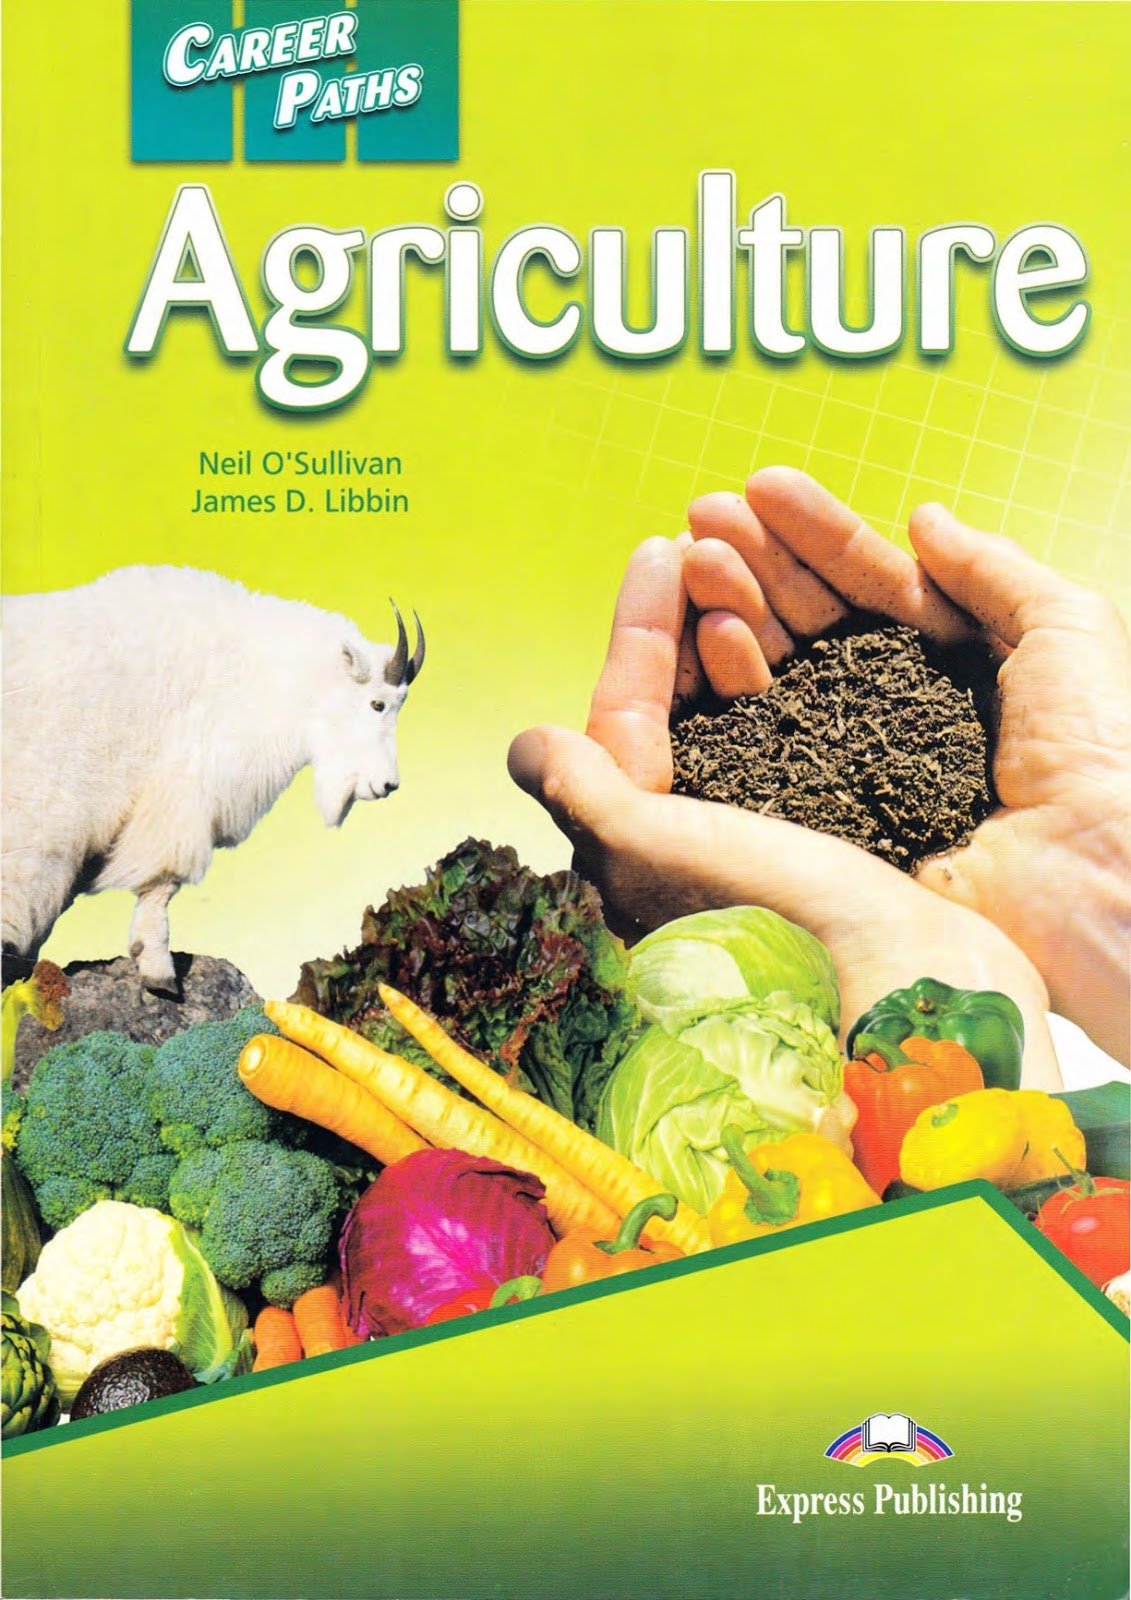 Career Path - Agriculture